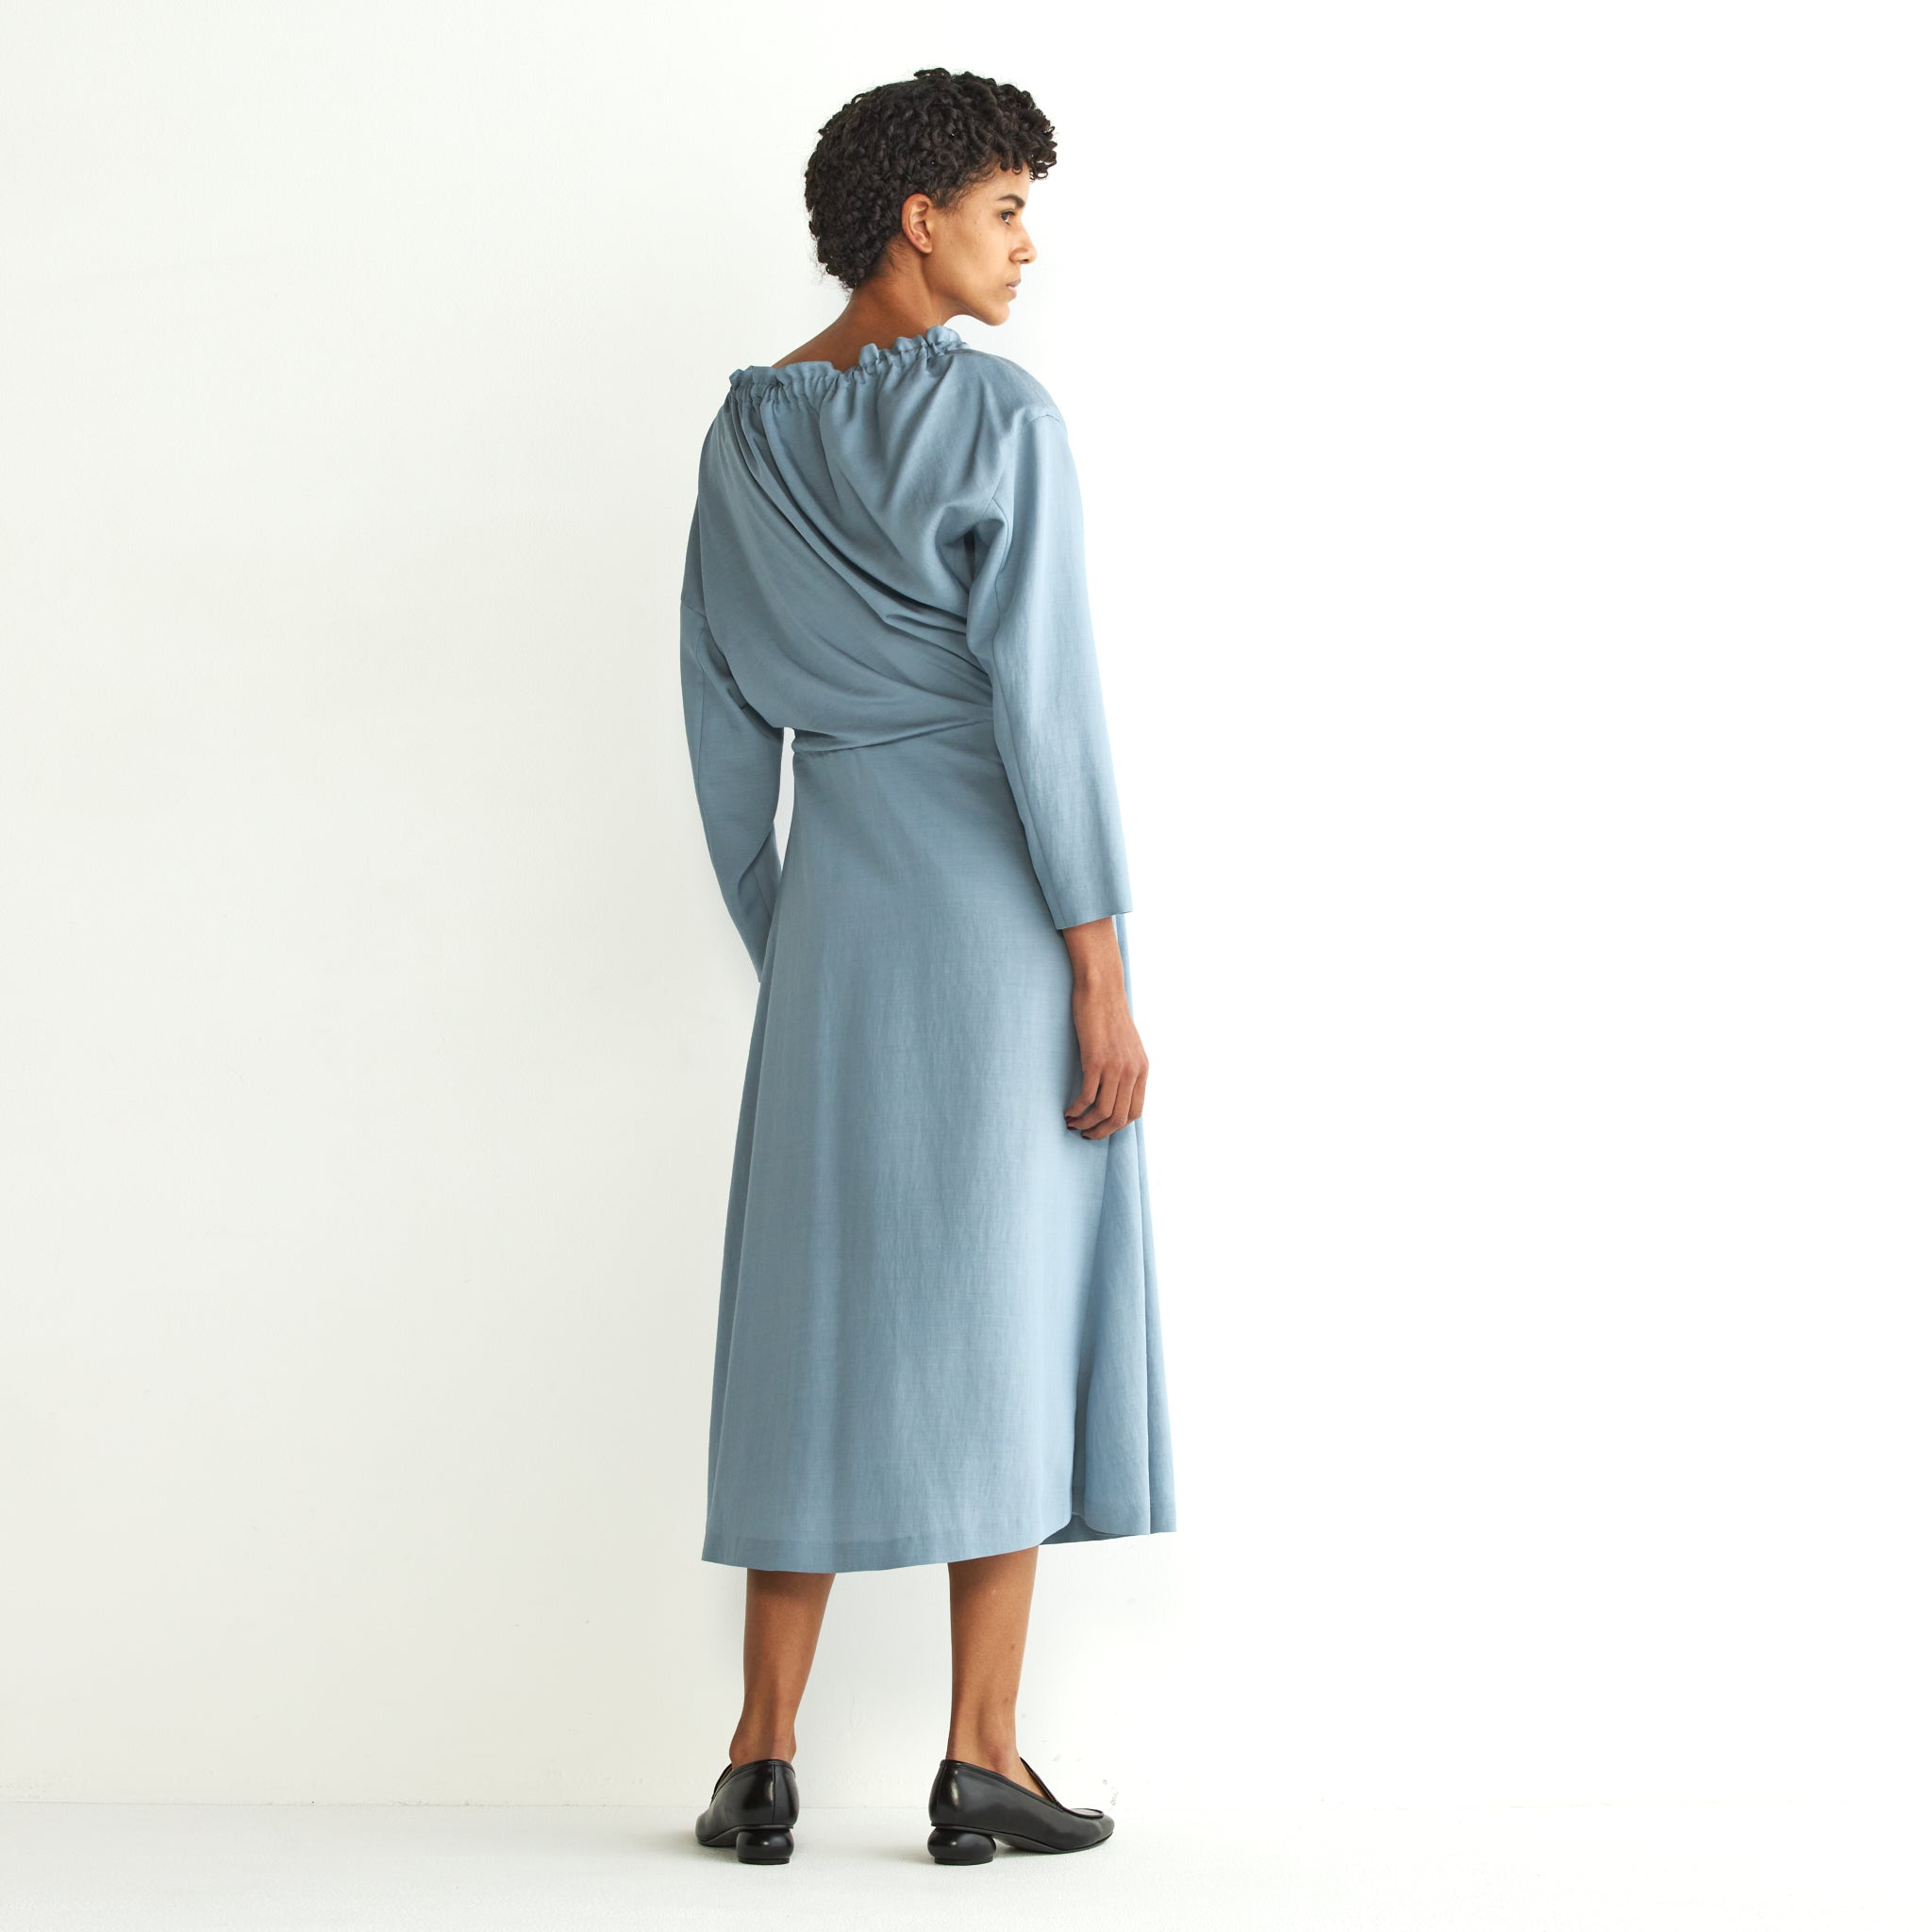 Jiline twist dress BL